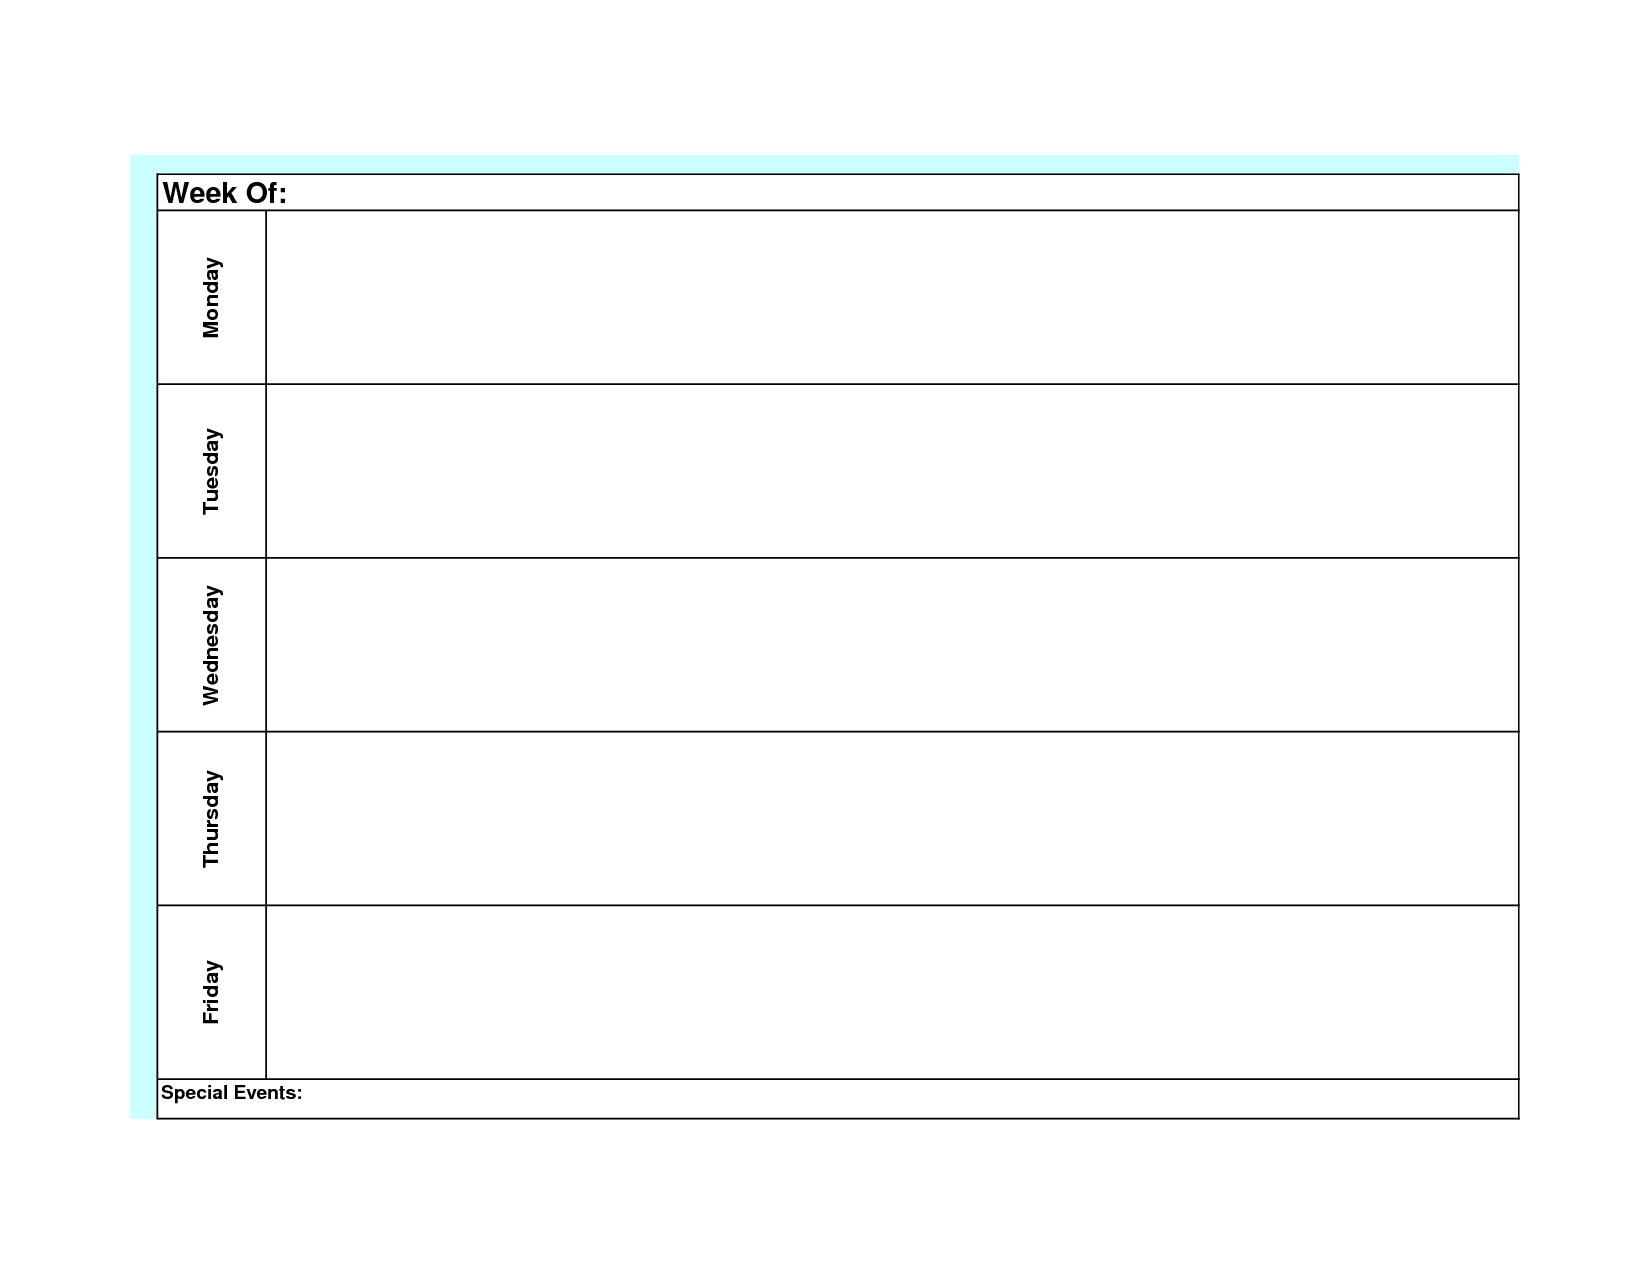 Blank Weekly Calendar Template Monday Friday | Weekly intended for Free Printable Monday Through Friday Calendar